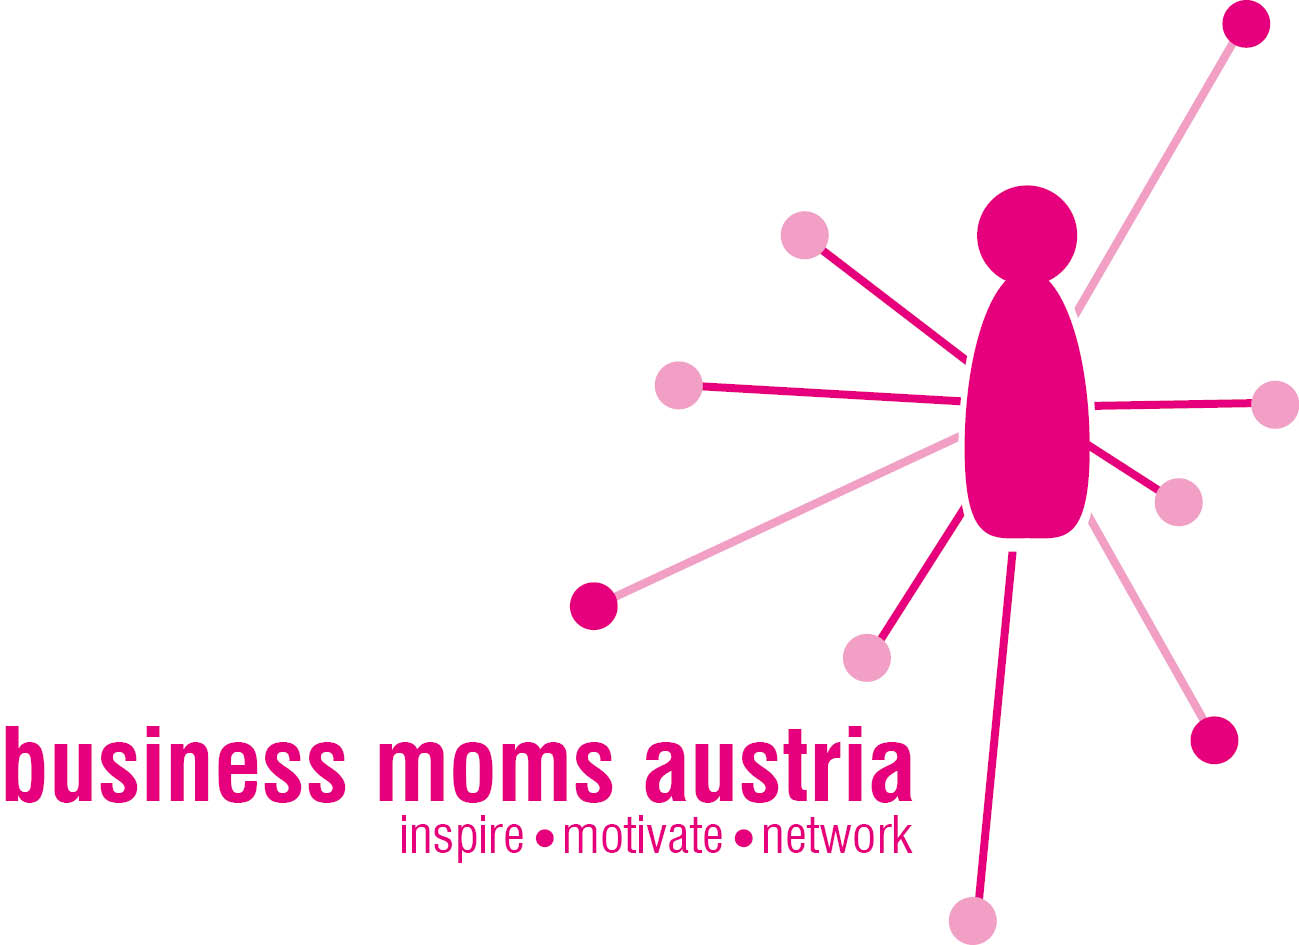 business moms austria